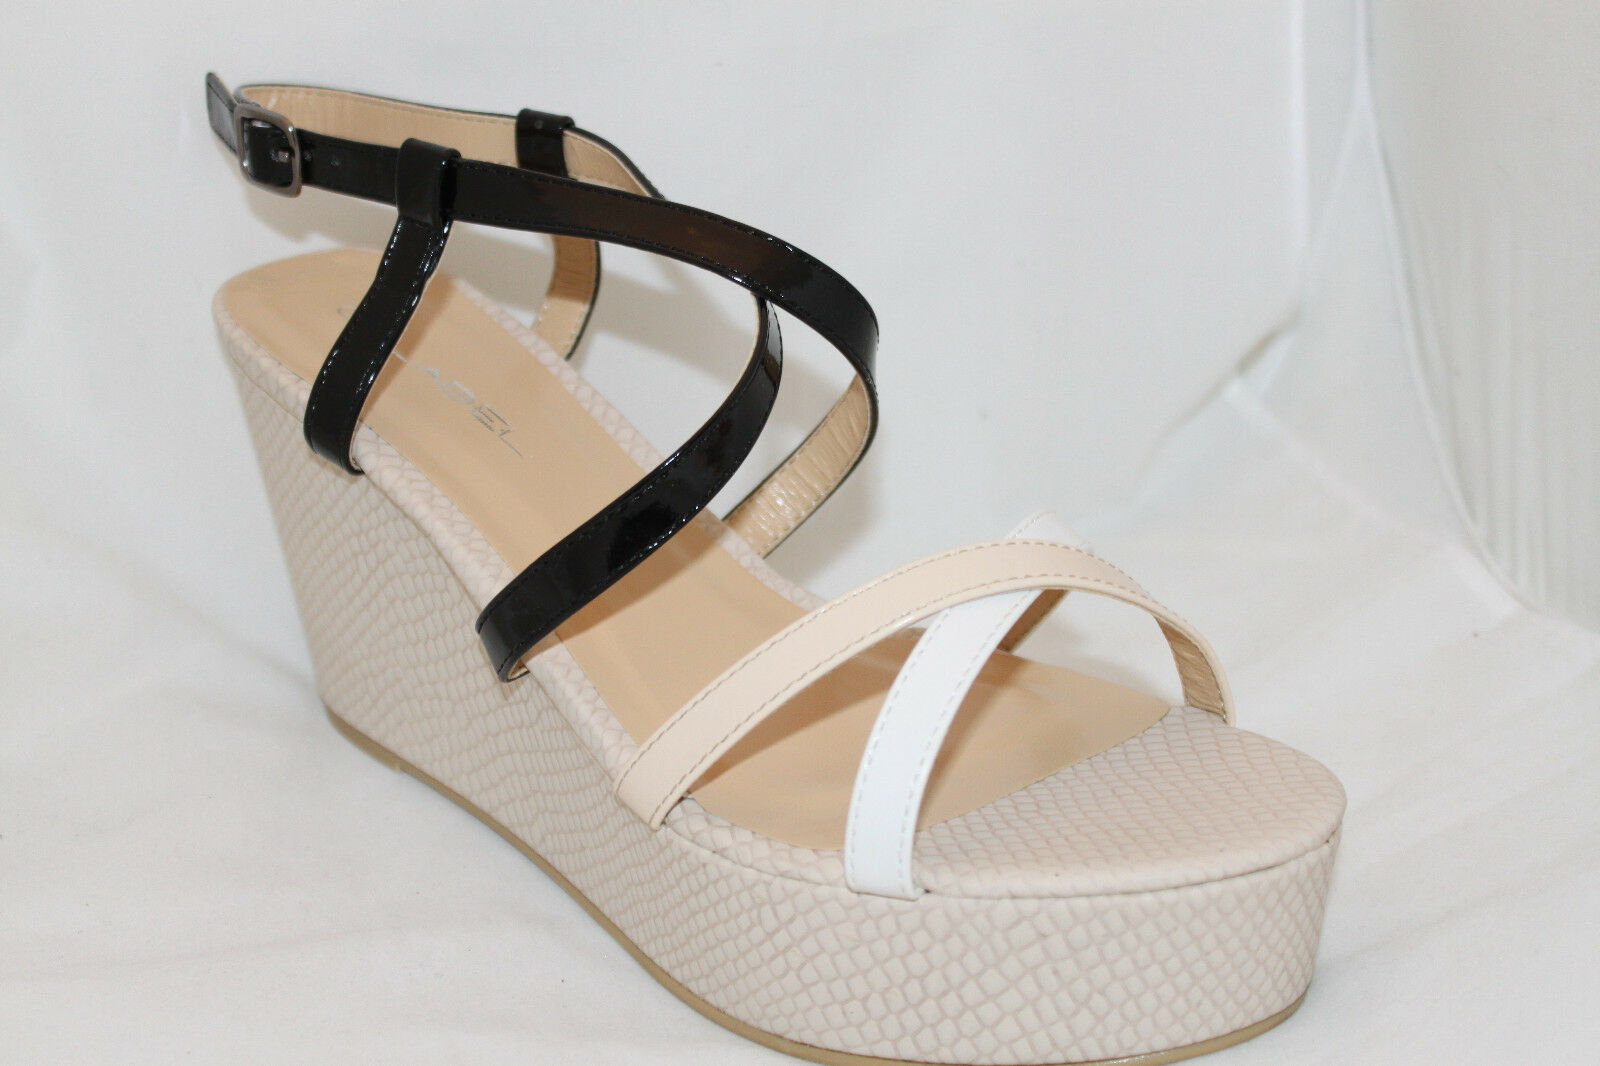 Platform Wedge Sandals Style Strappy Color Block Black and White Style Sandals Women's Shoes 74e1bc